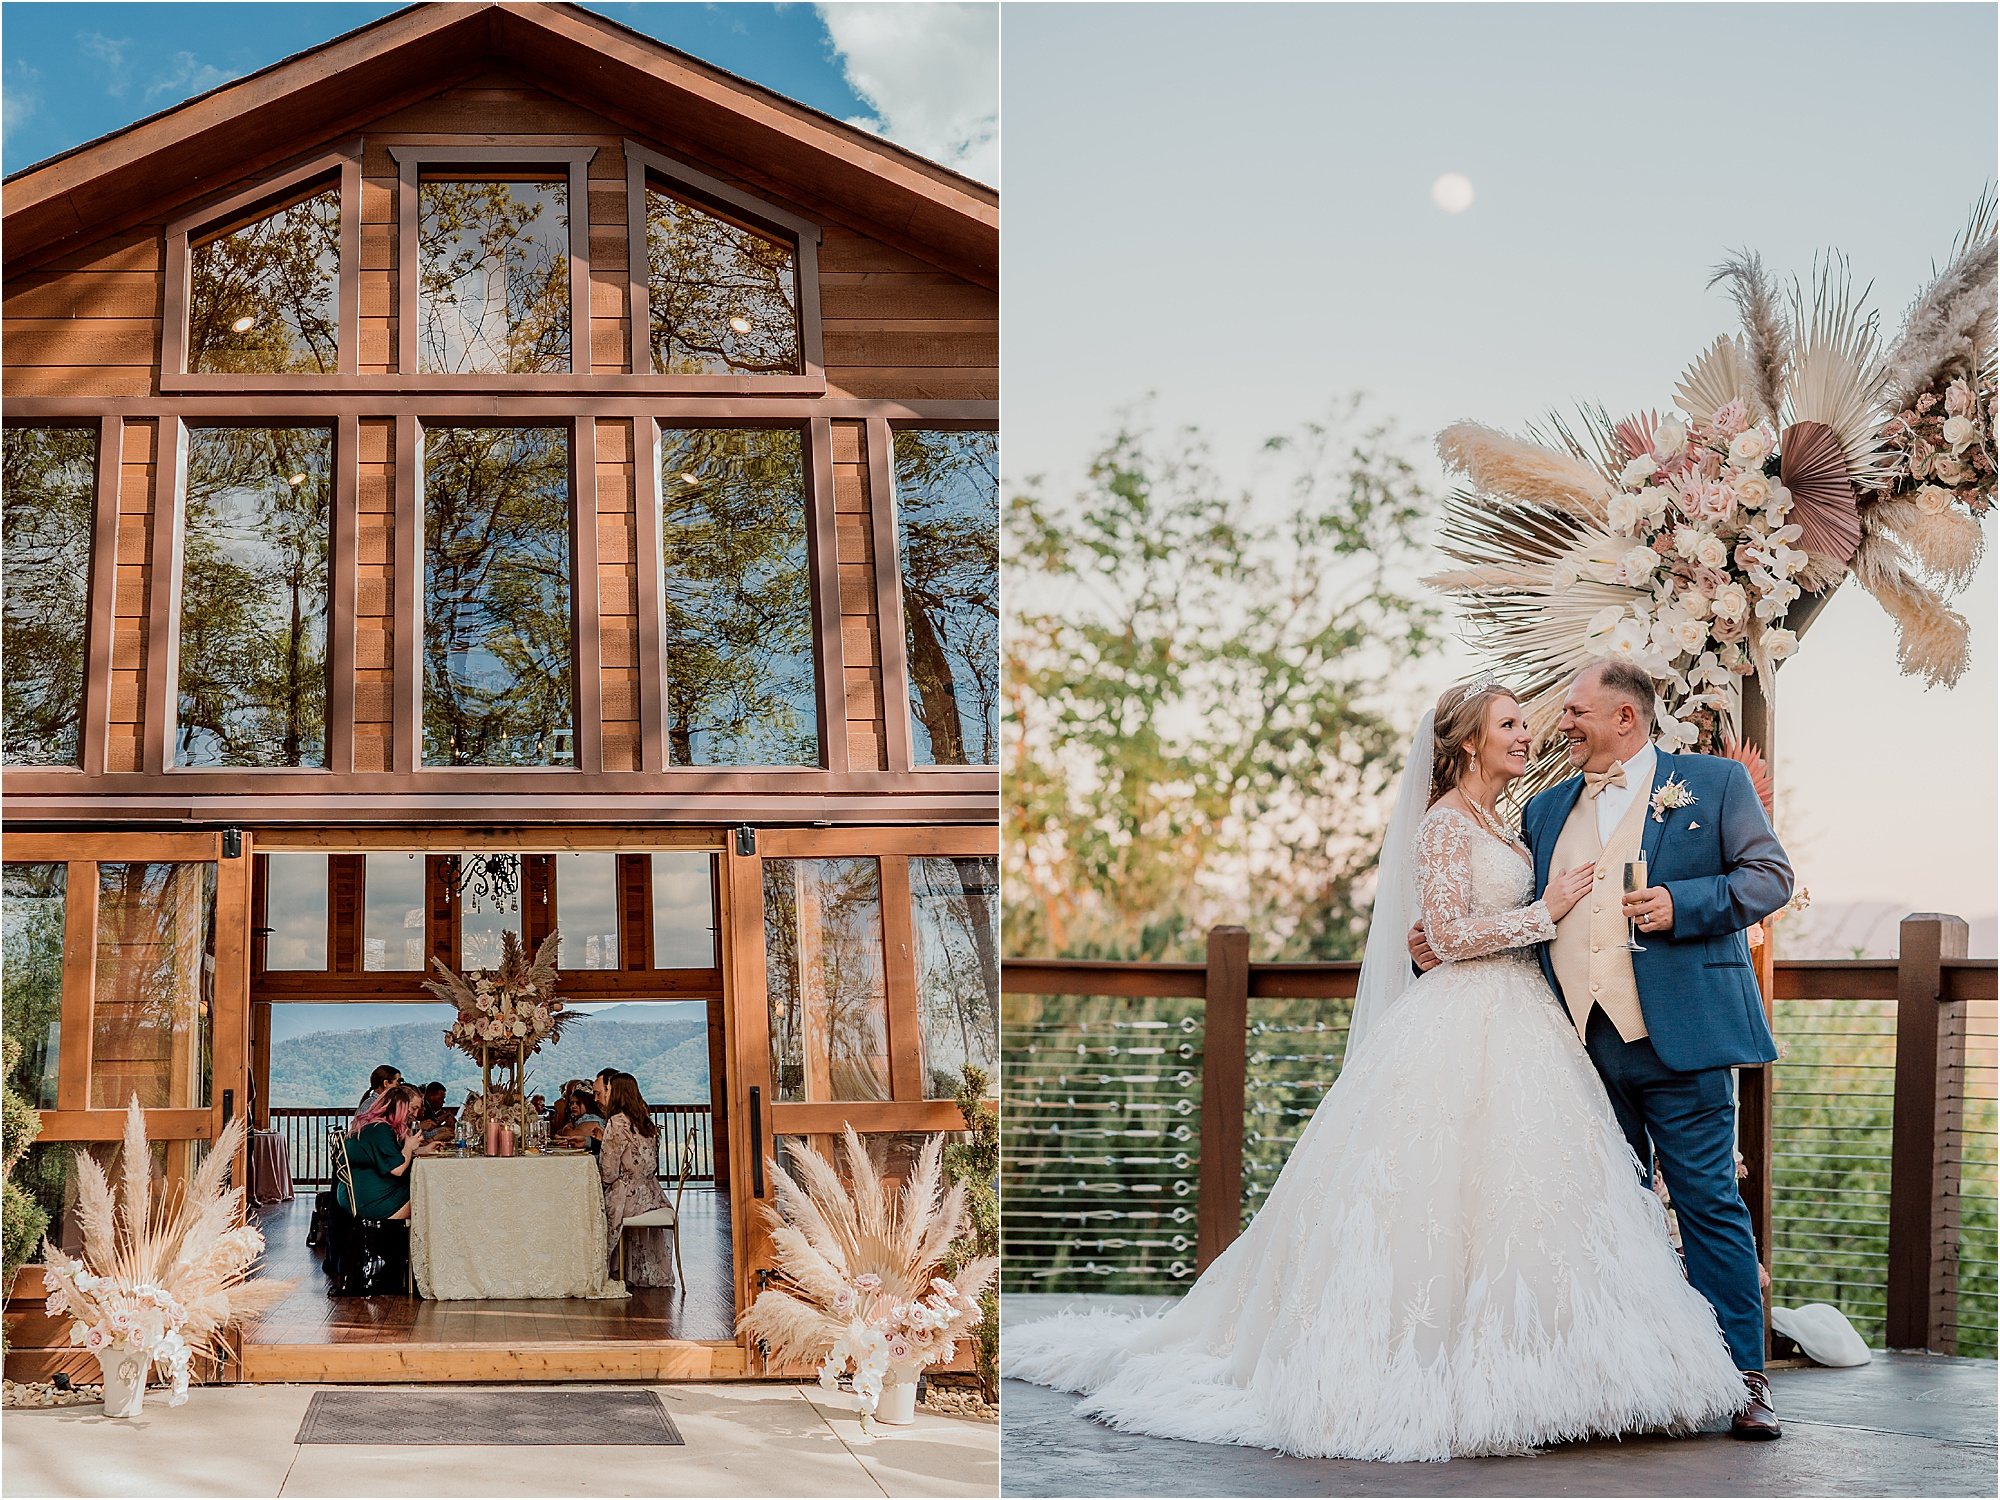 Fairytale Wedding at The Magnolia Venue in Pigeon Forge